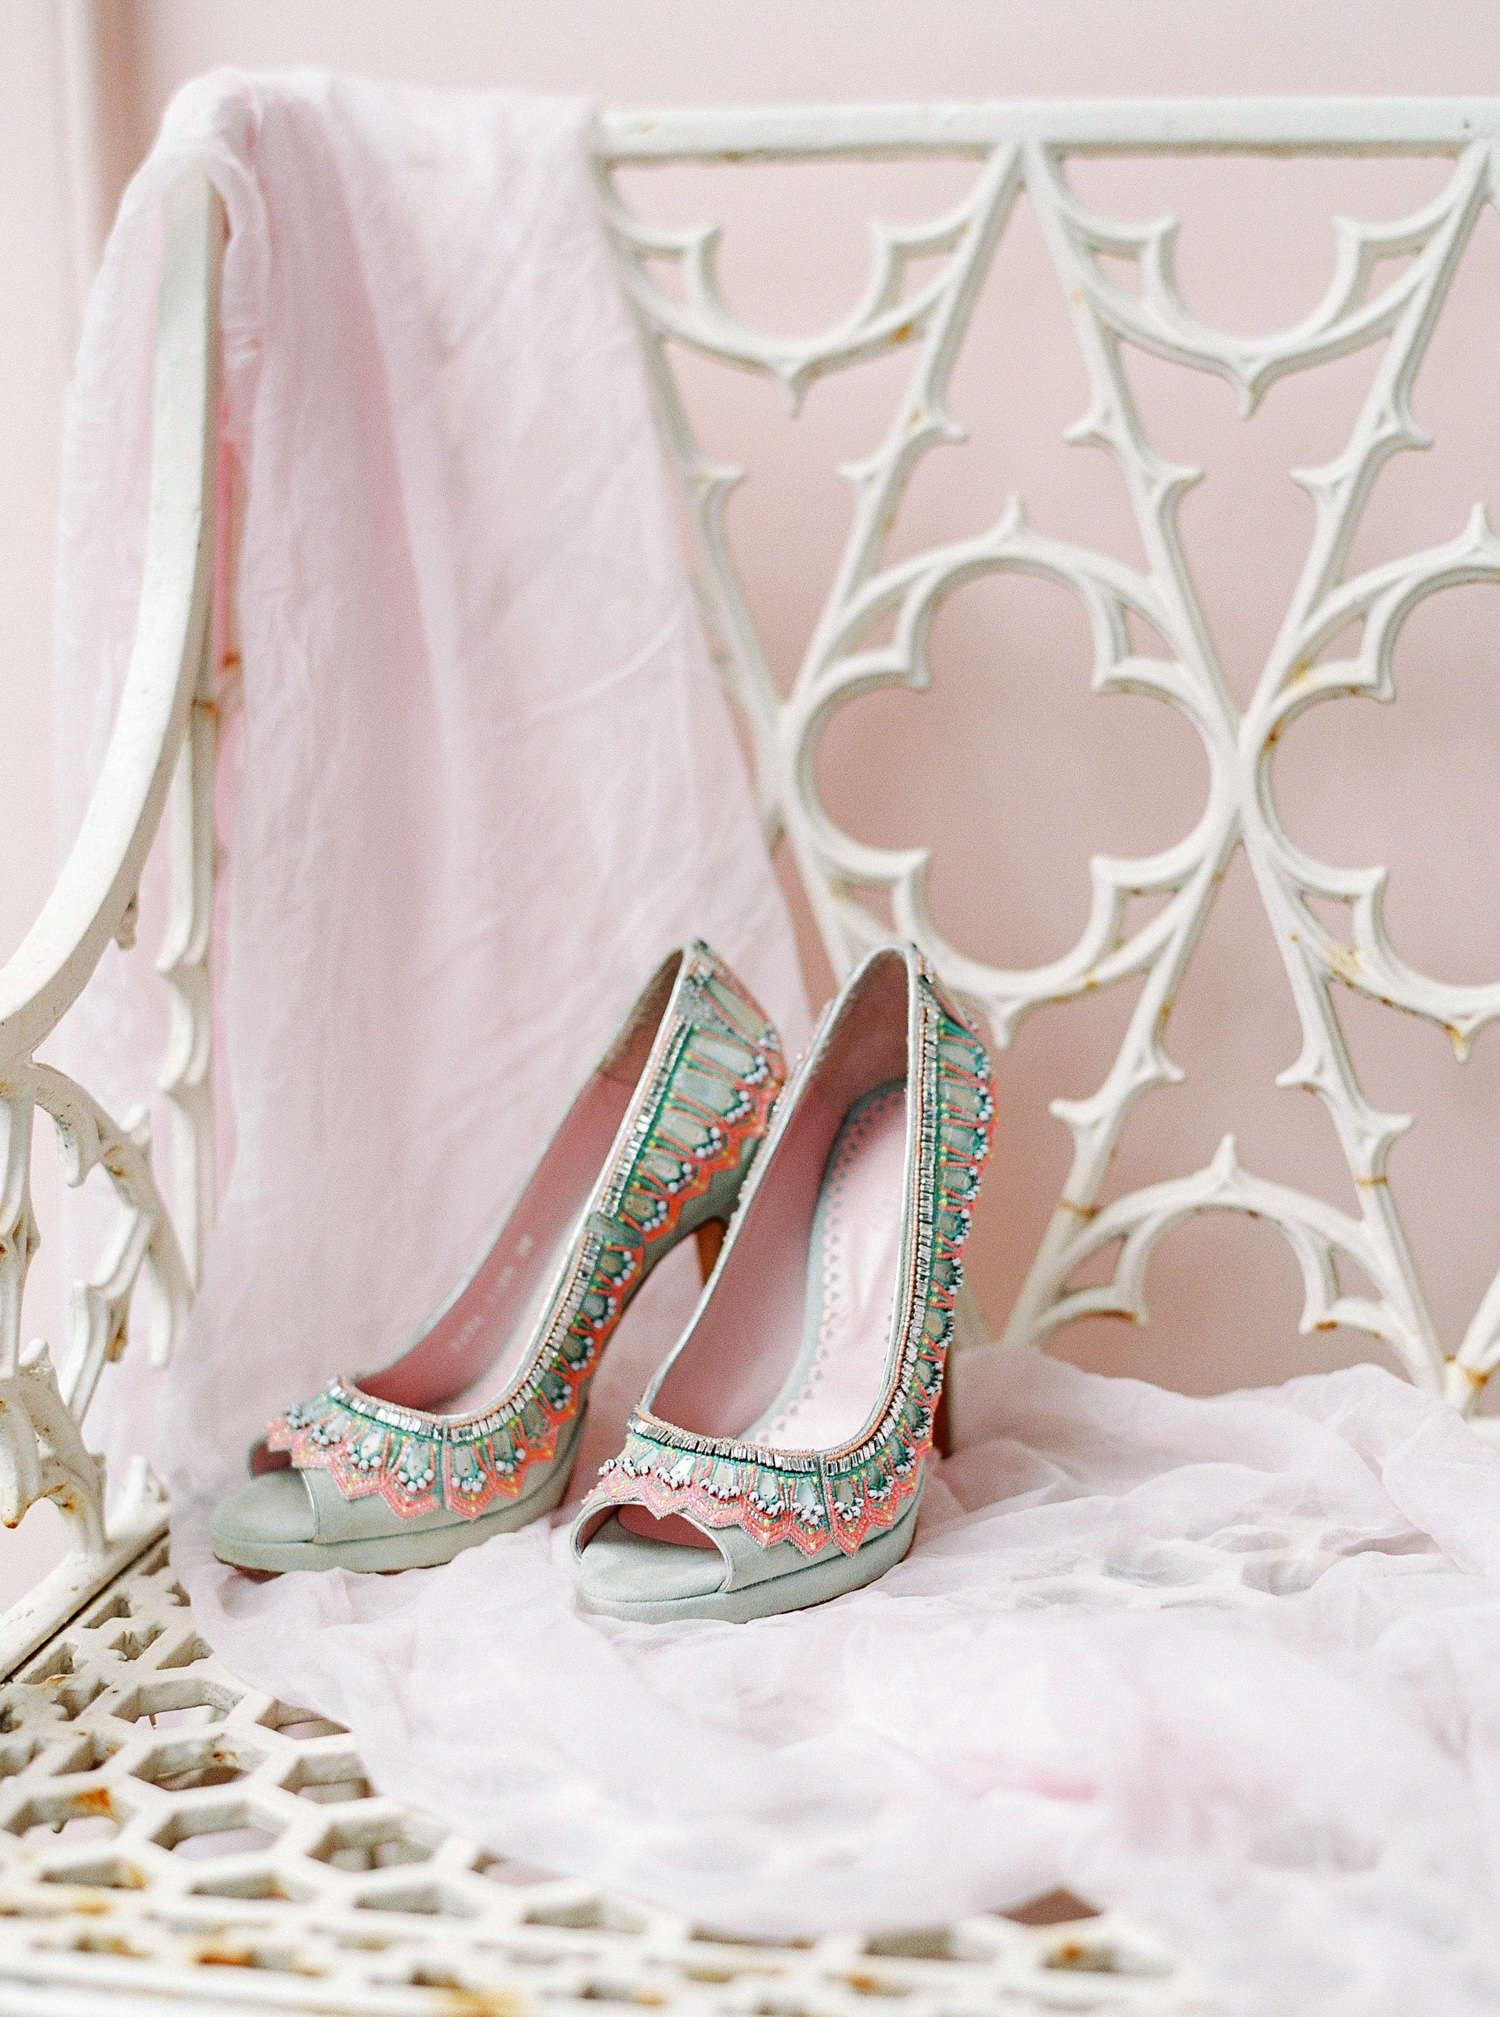 Emmy London coloured wedding shoes